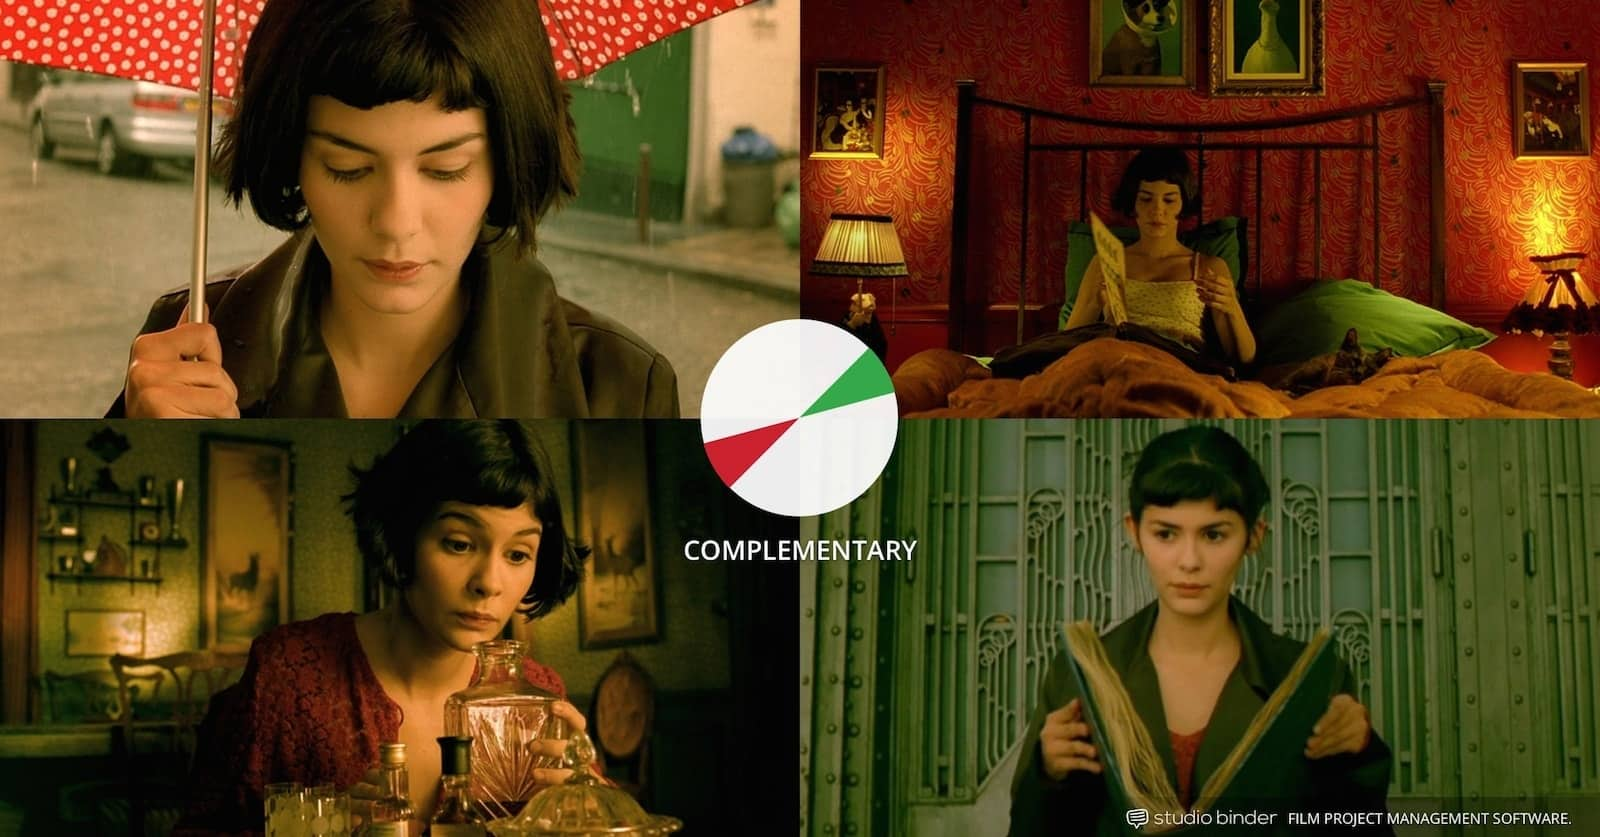 How to Use Color in Film - Movie Color Palette Example - Types of Color Schemes - Complementary Color Scheme - Amelie